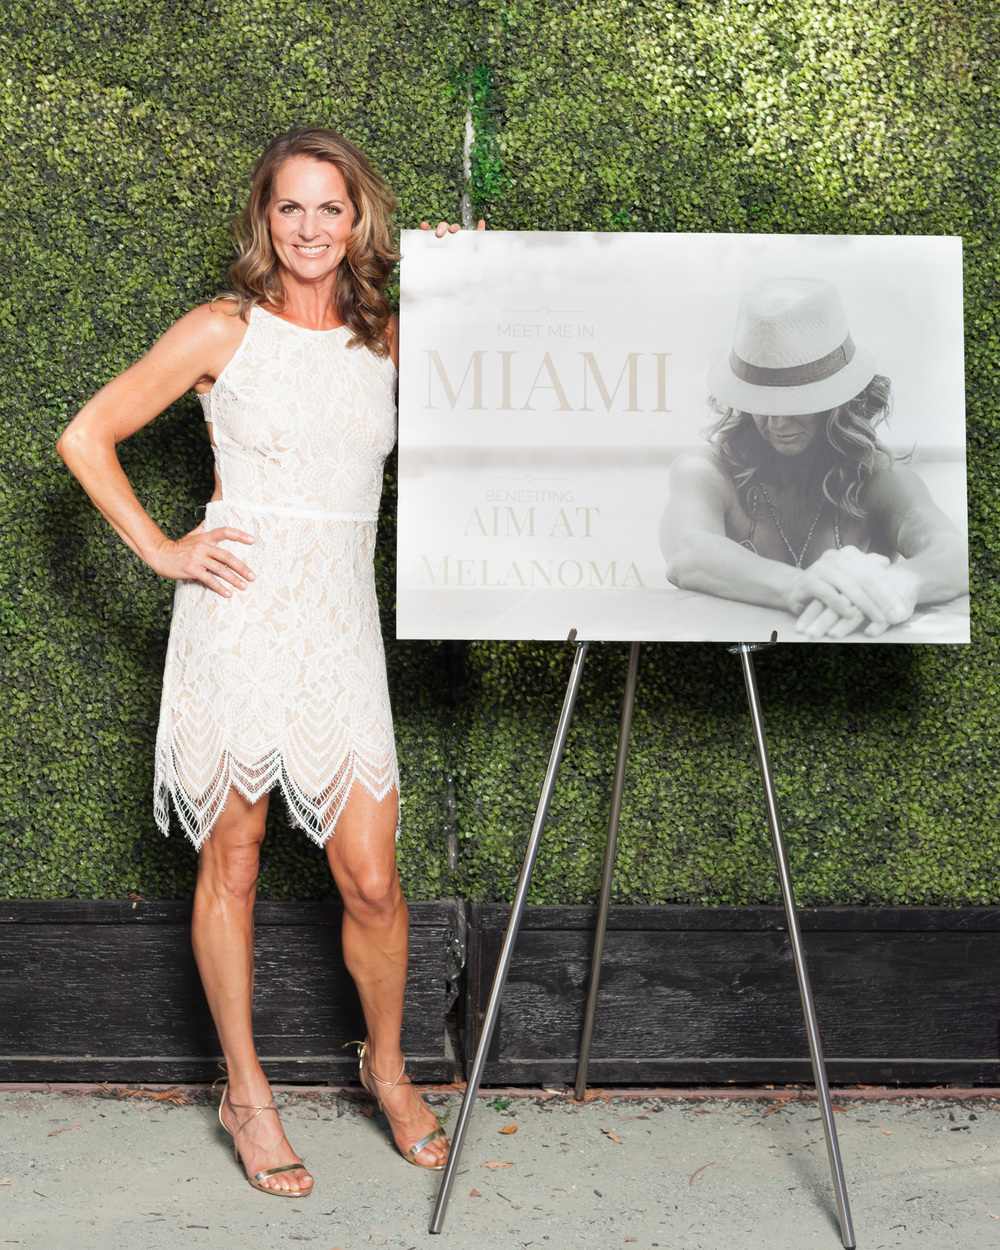 meet me in miami event recap apres soleil mg 2926 jpg